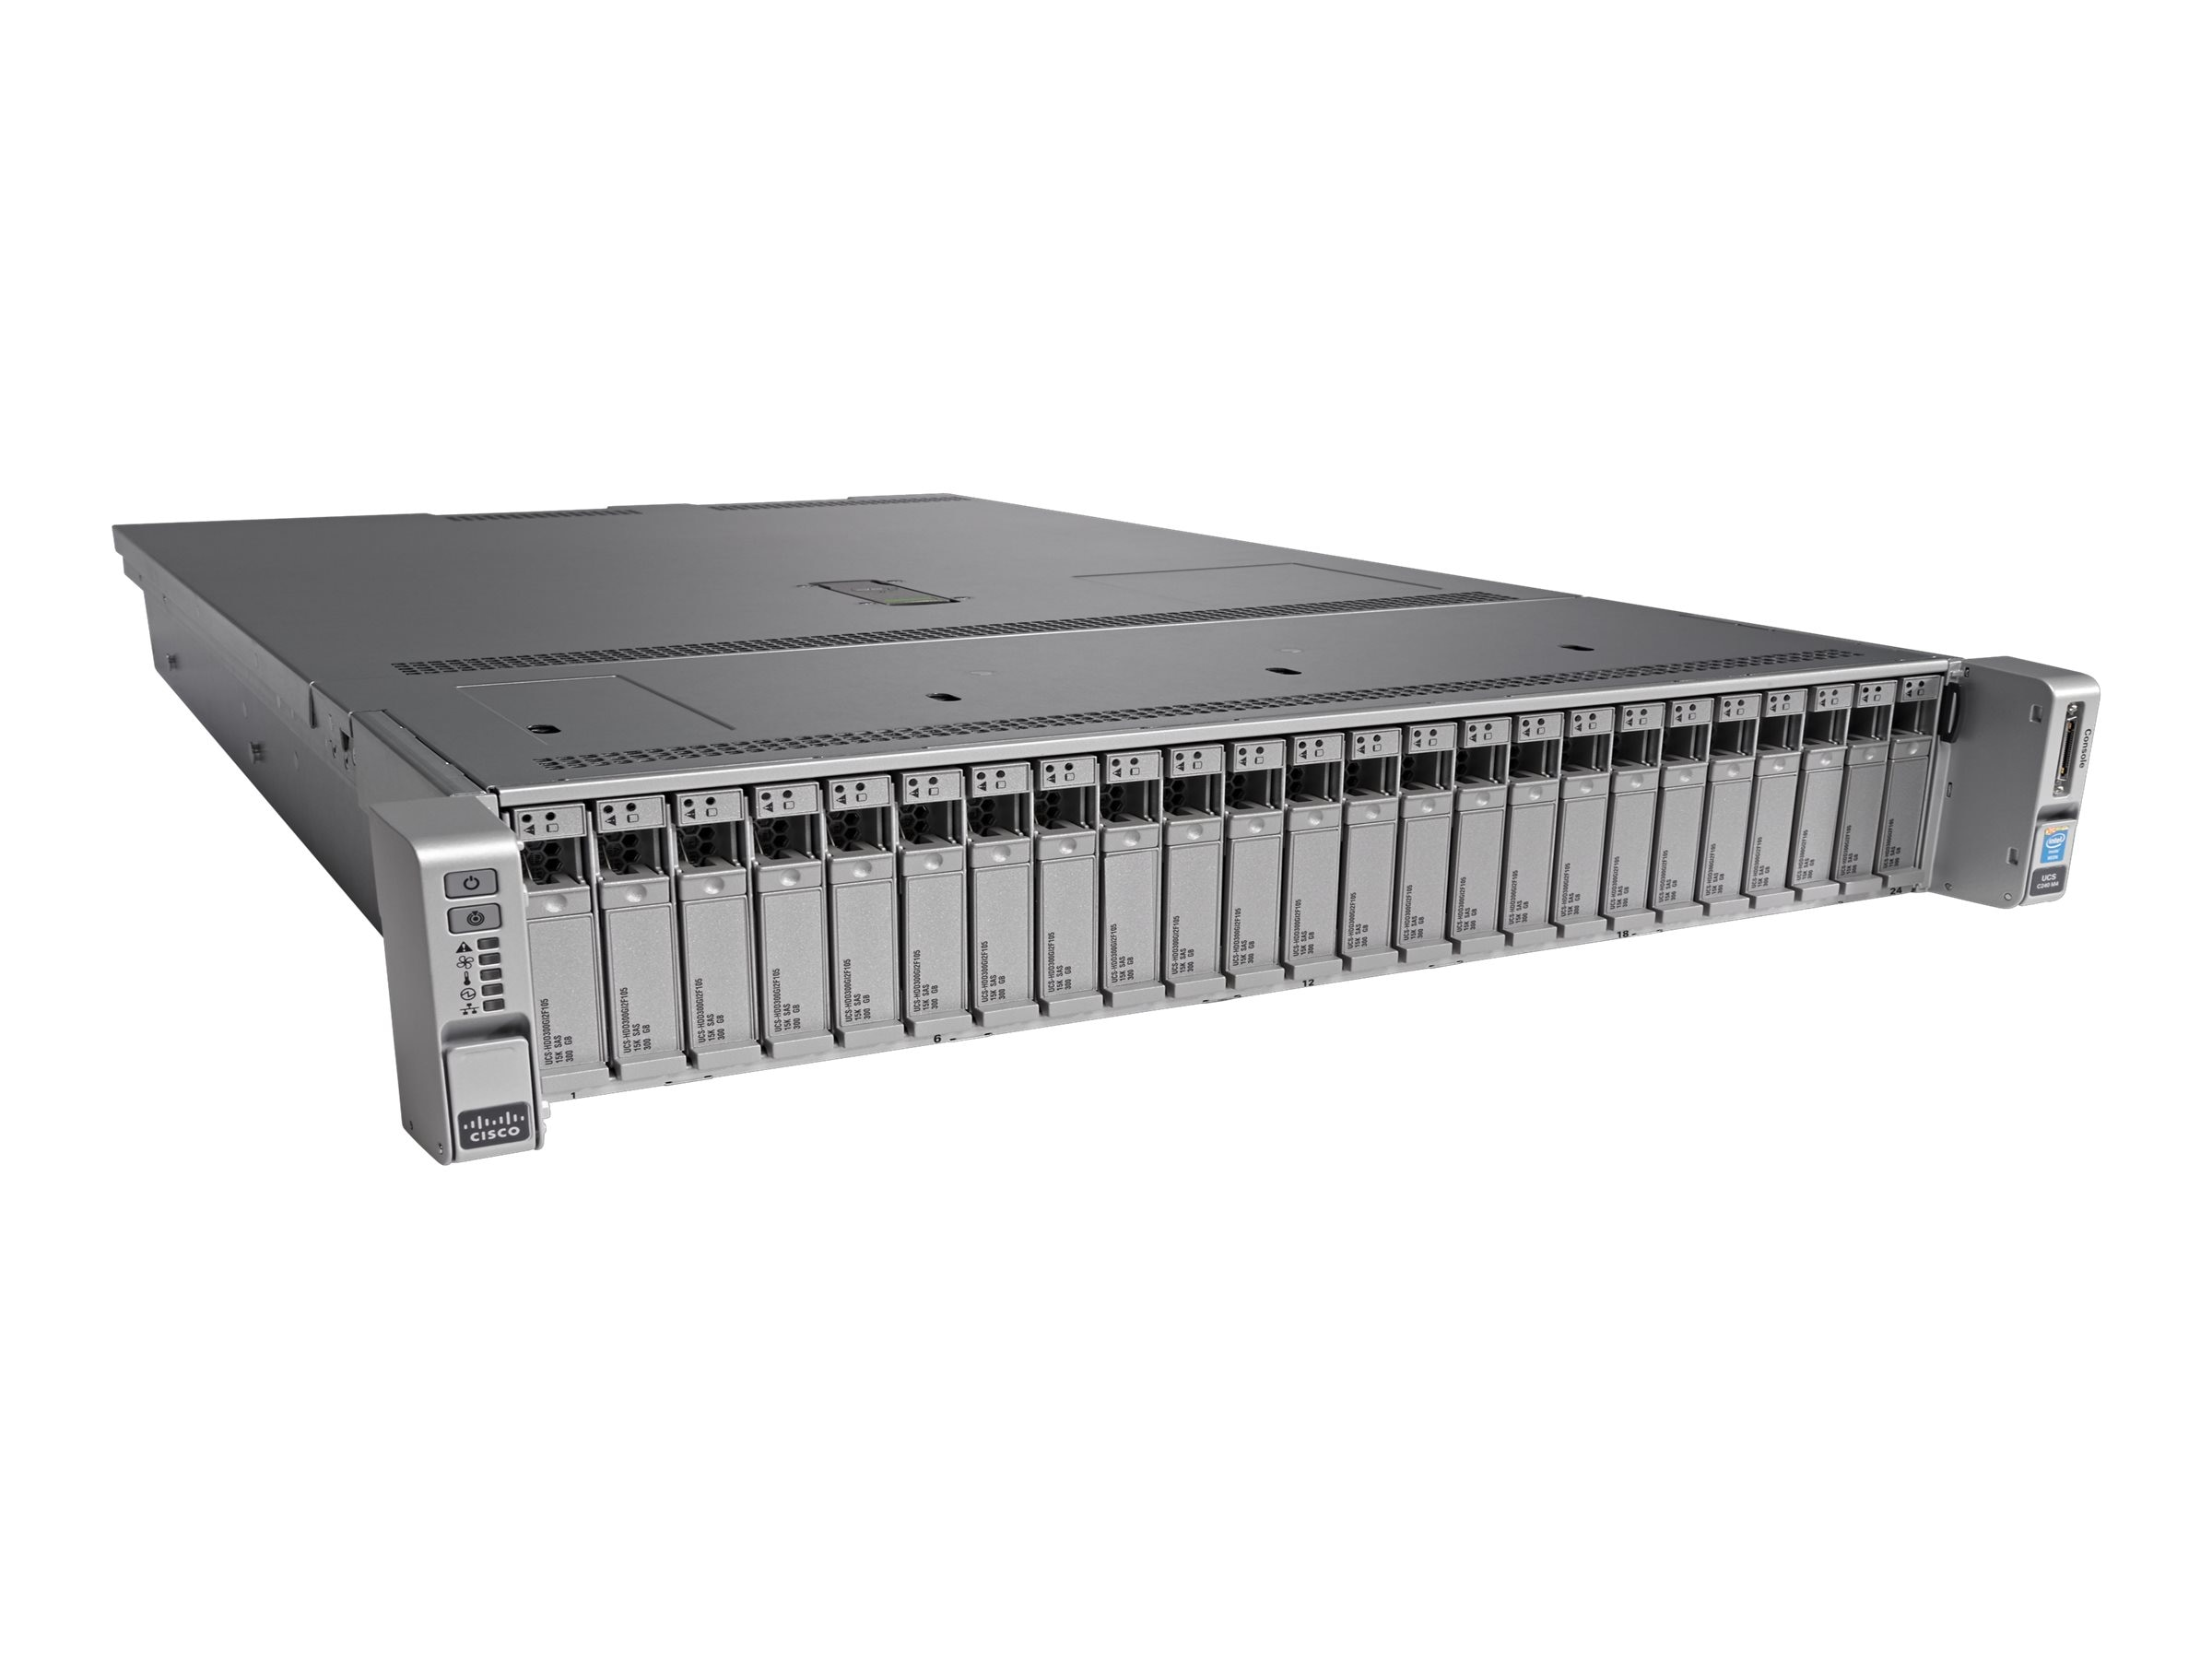 Cisco UCS-SPR-C240M4-BB1 Image 4